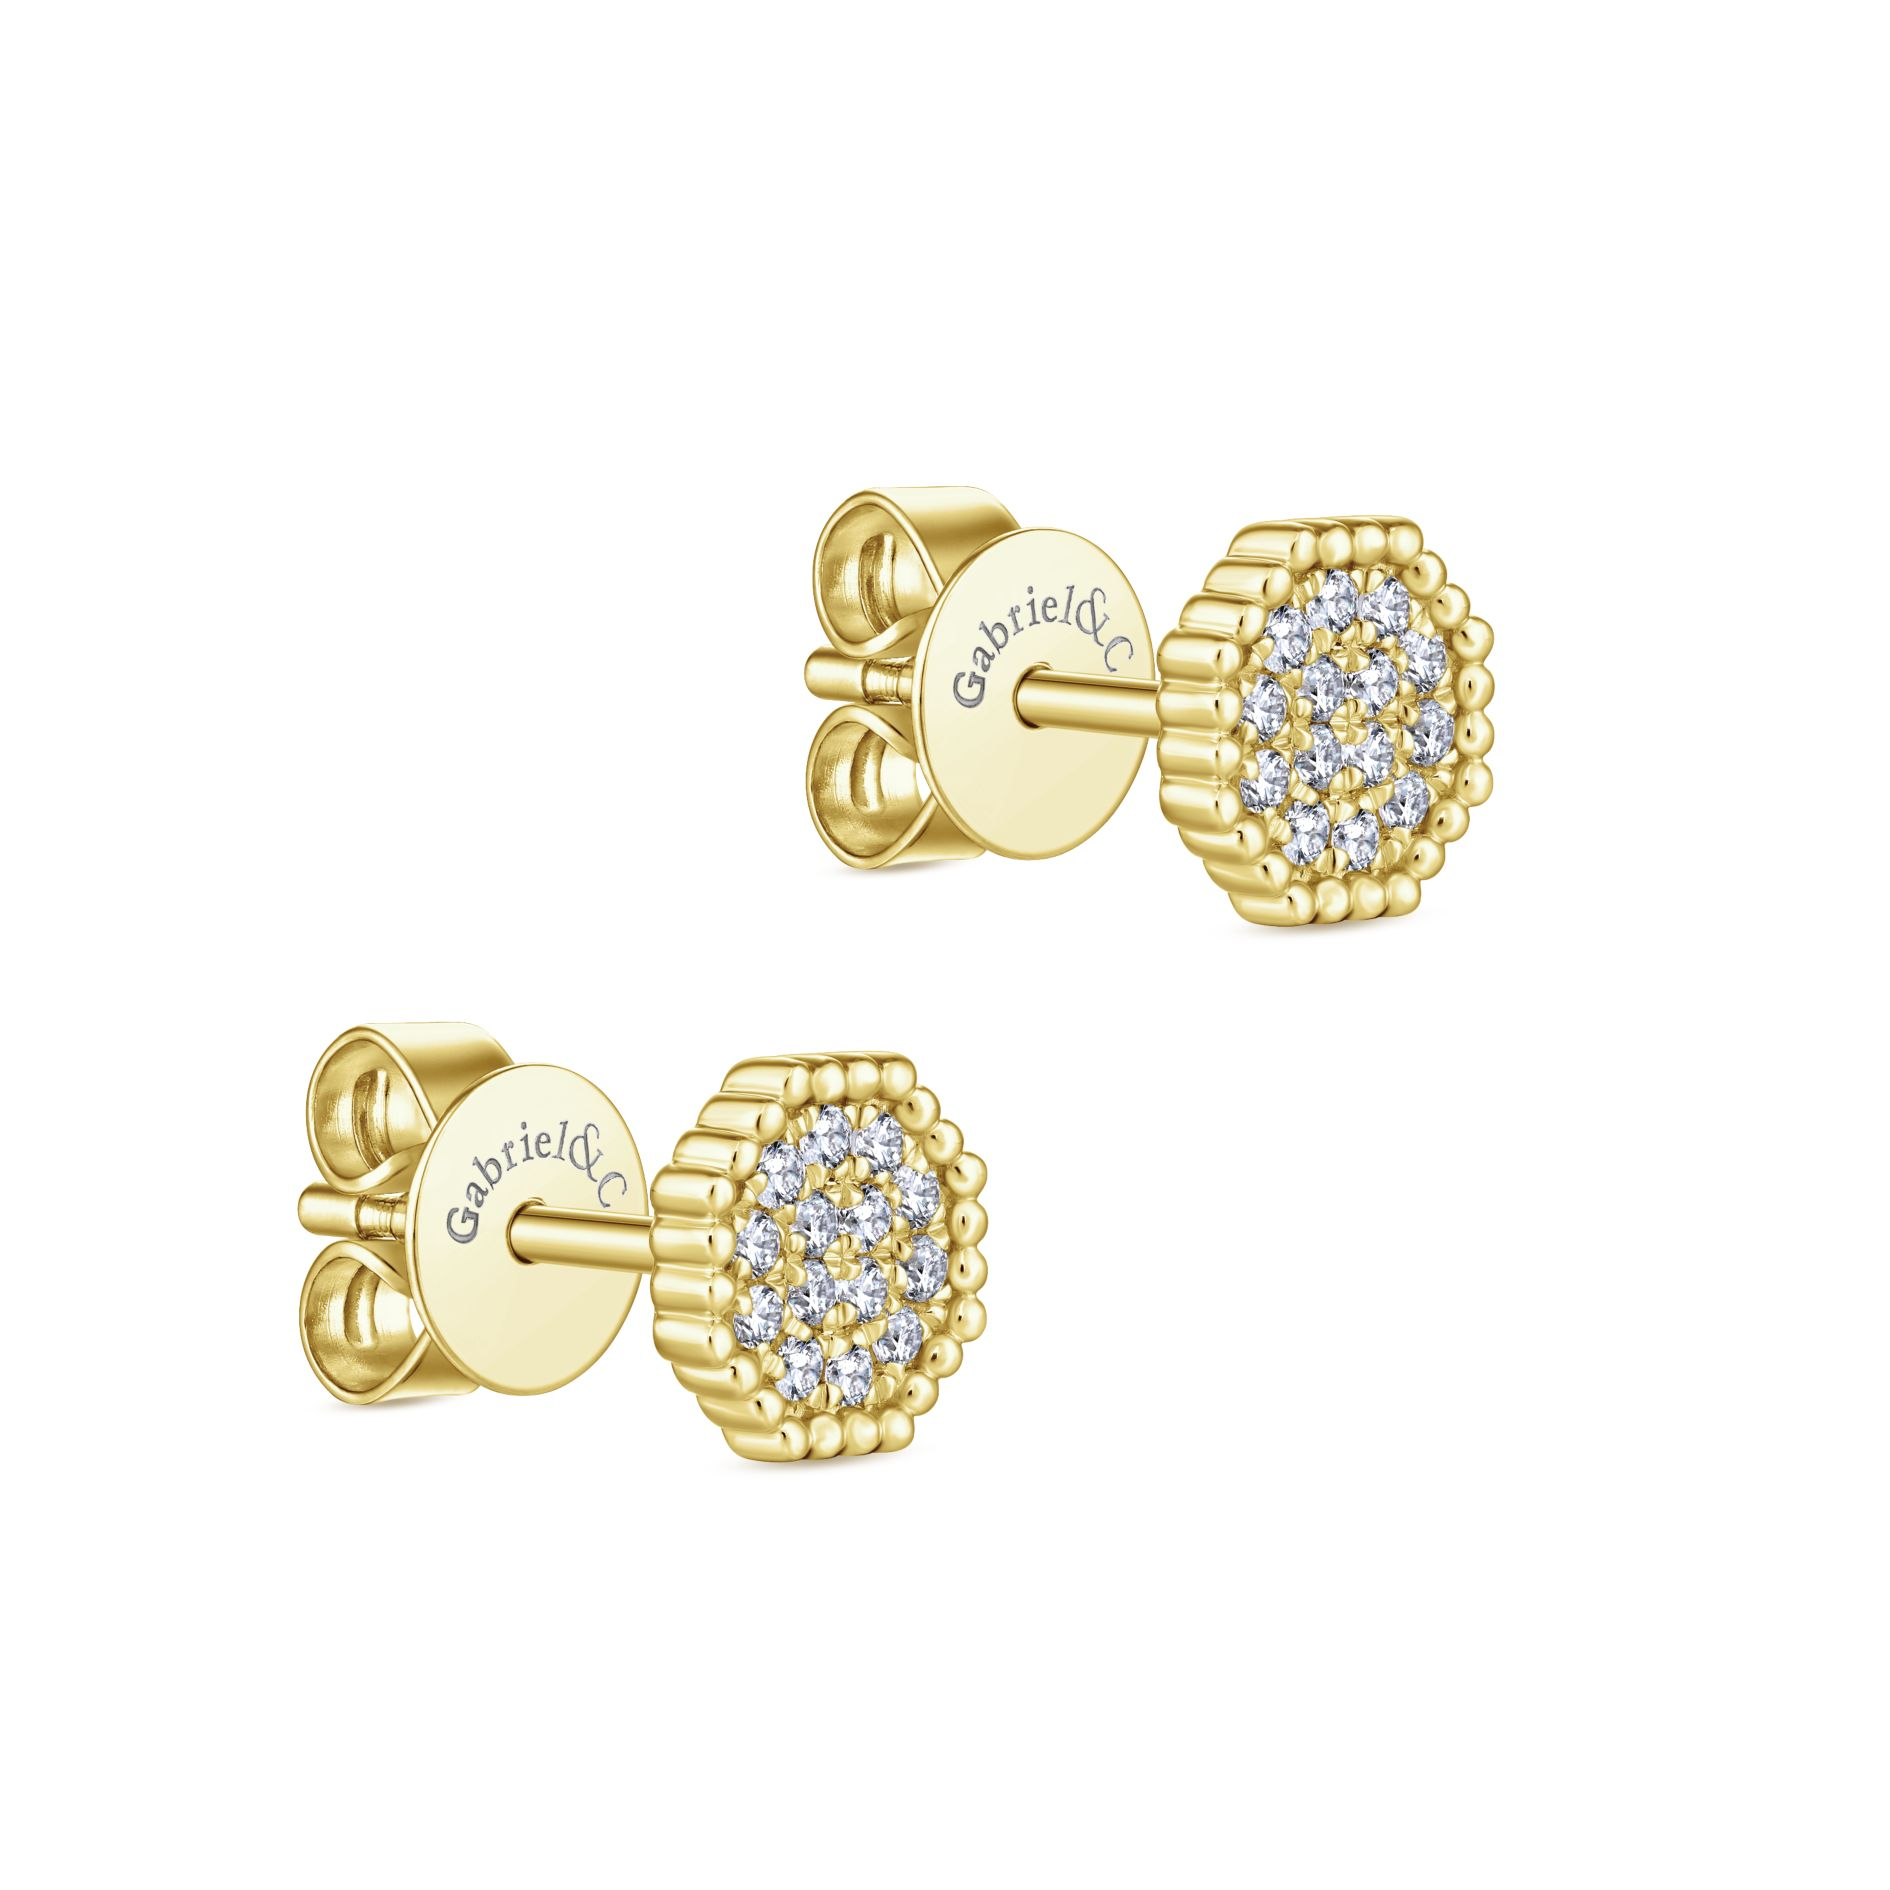 Earrings - YELLOW GOLD STUD DIAMOND EARRINGS - image #2